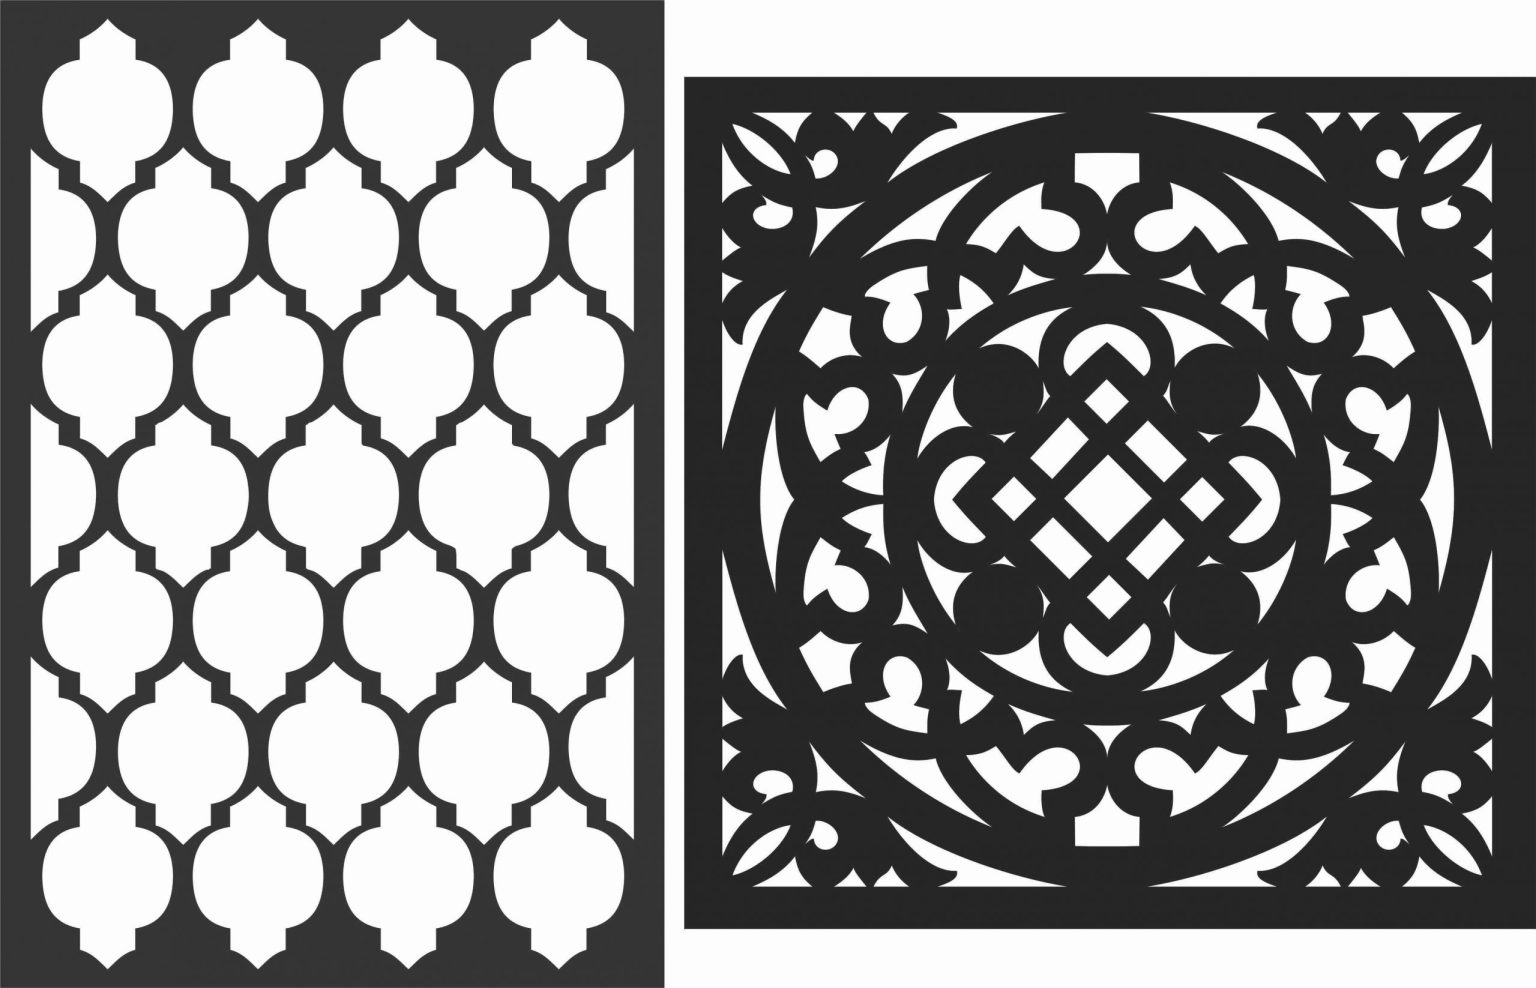 Floral Screen Patterns Design 27 Free DXF File